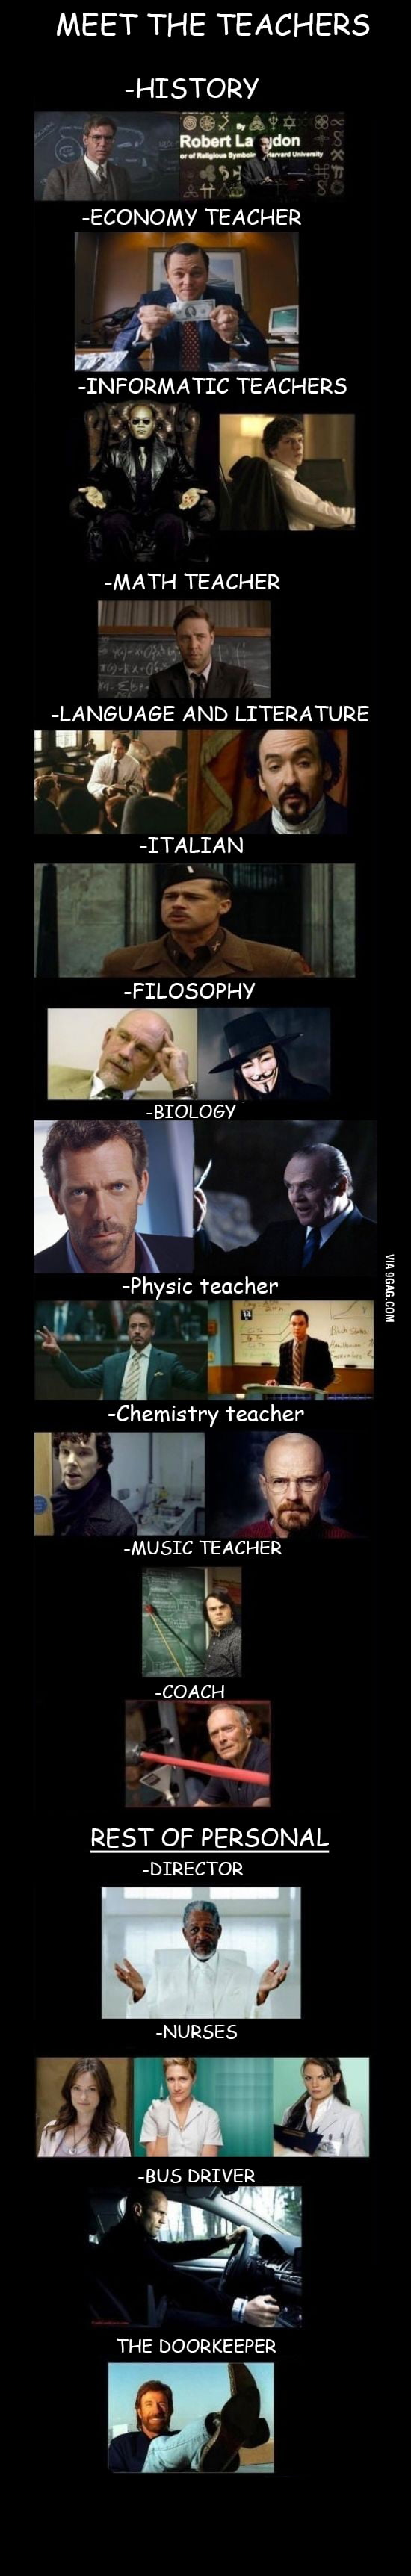 the perfect school would you like to be there 9gag would you like to be there